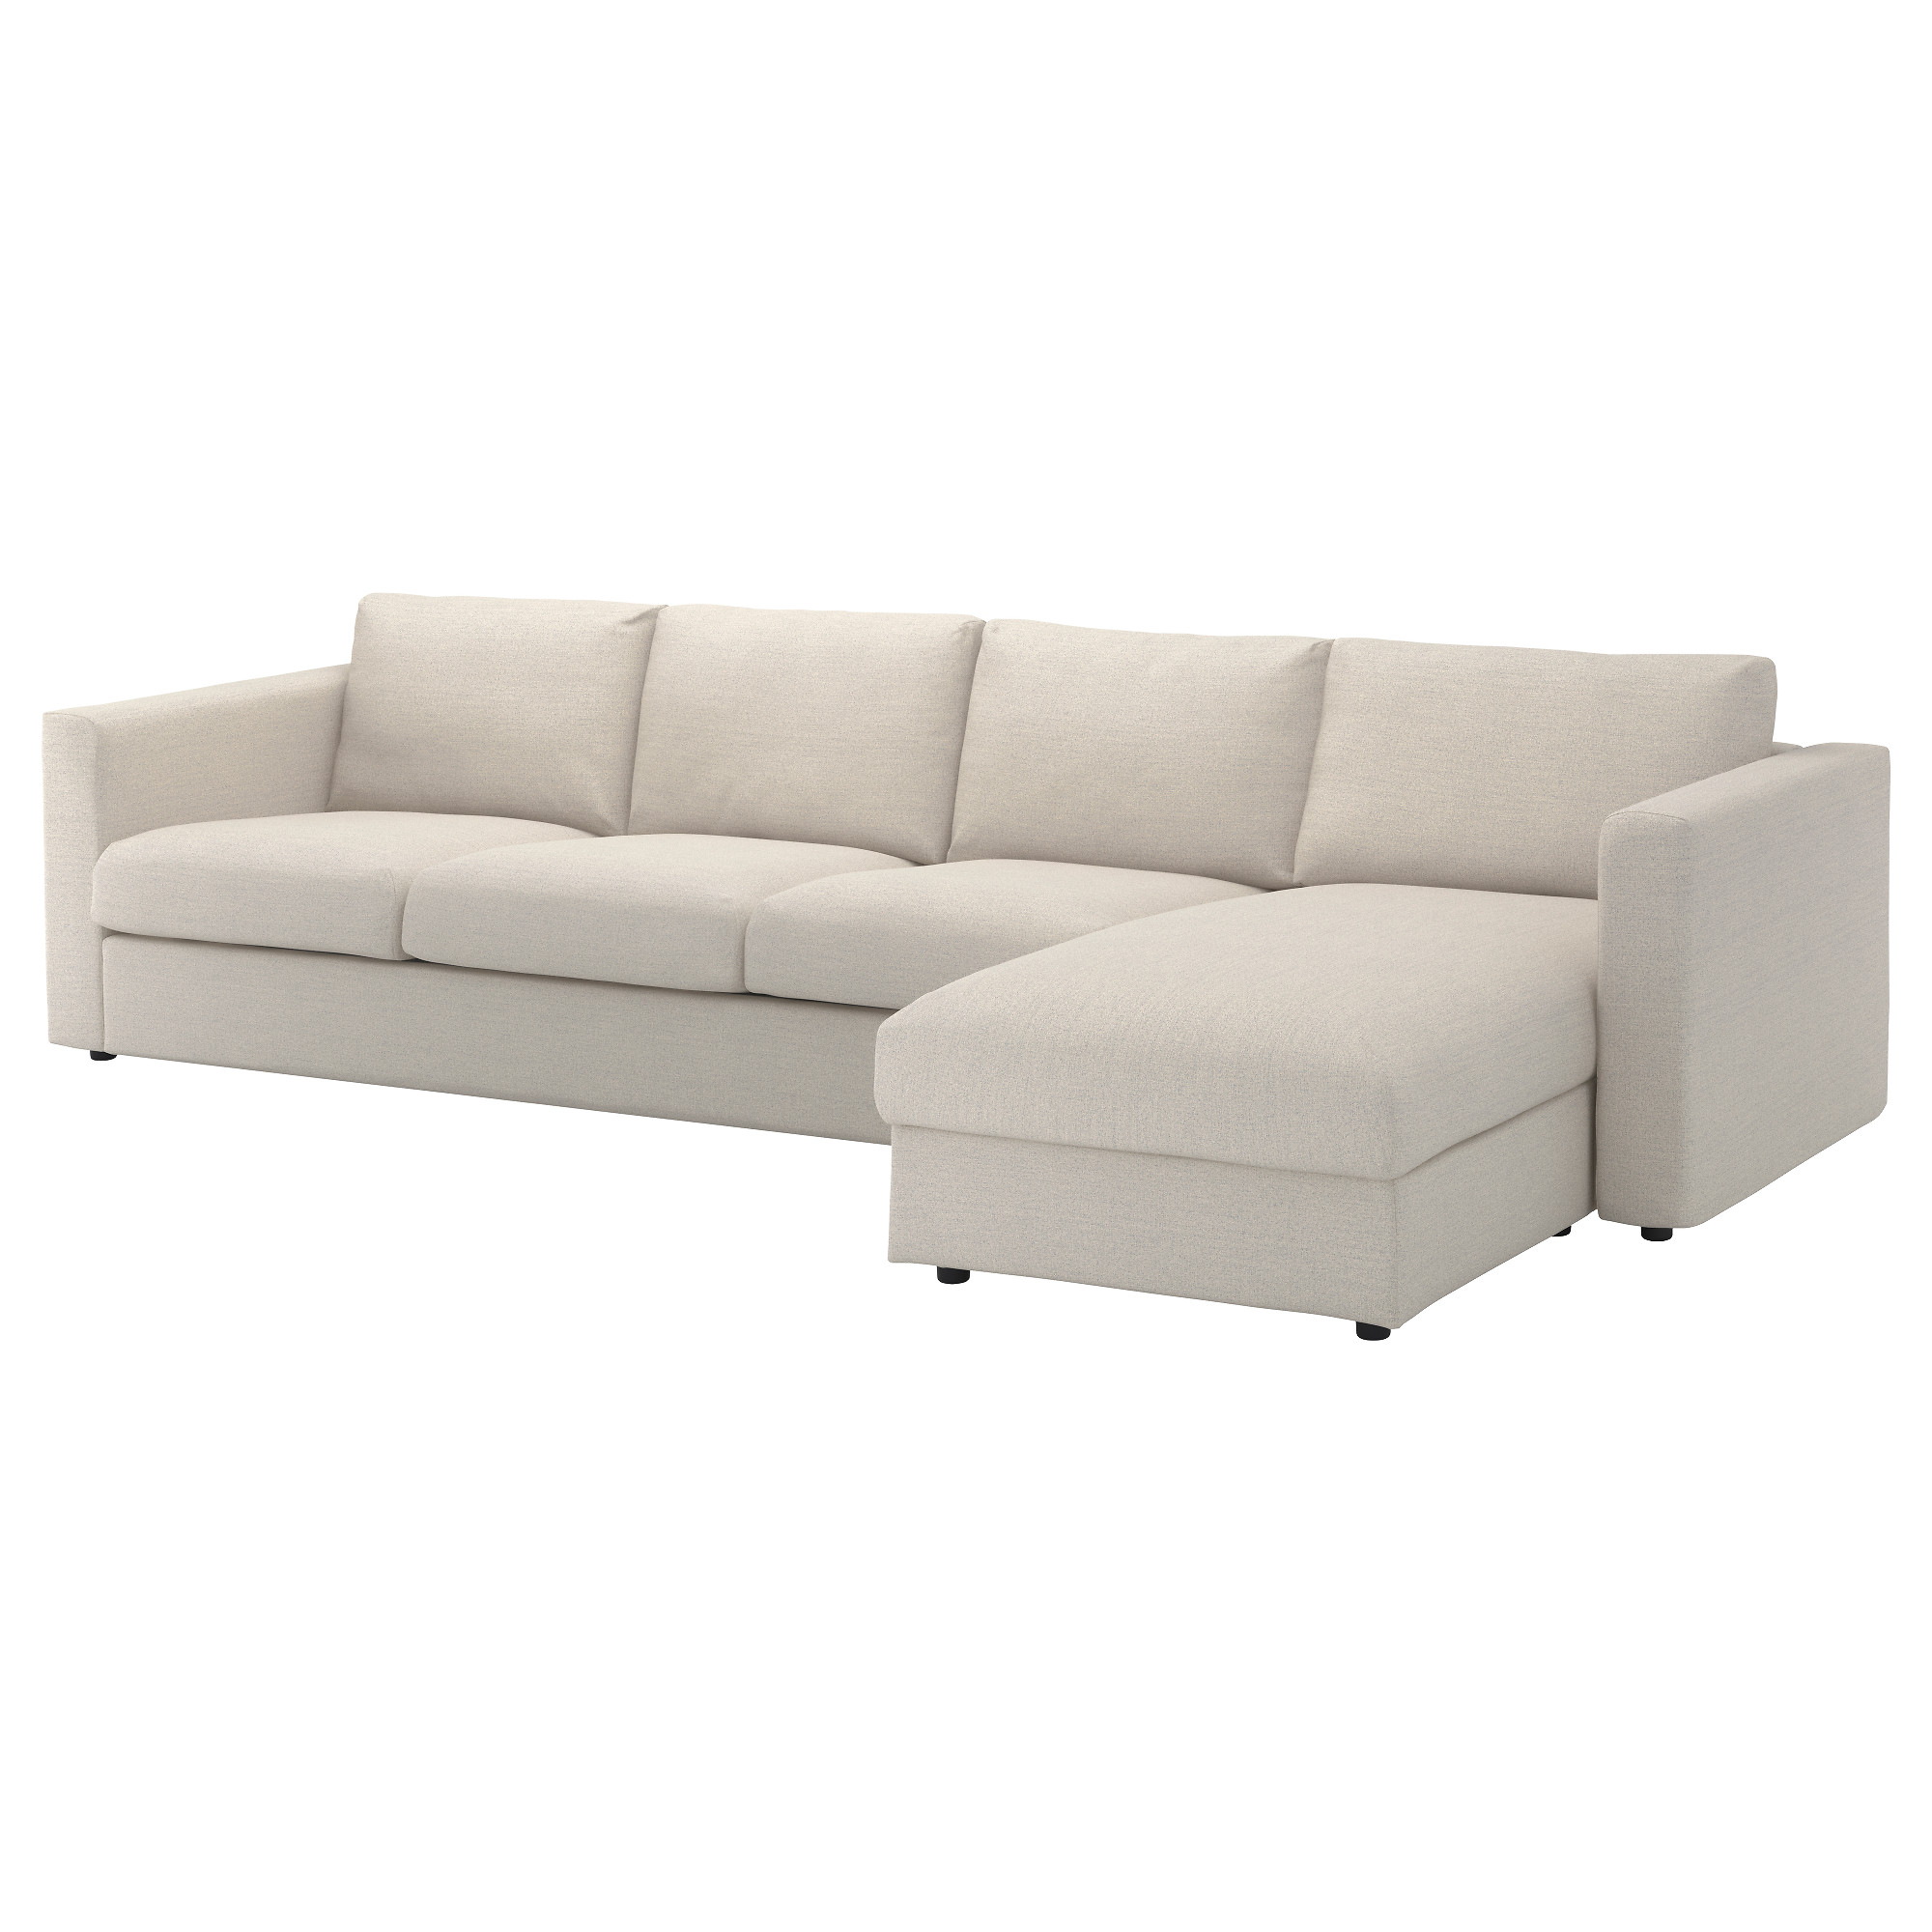 vimle 4 seat sofa with chaise longue gunnared beige